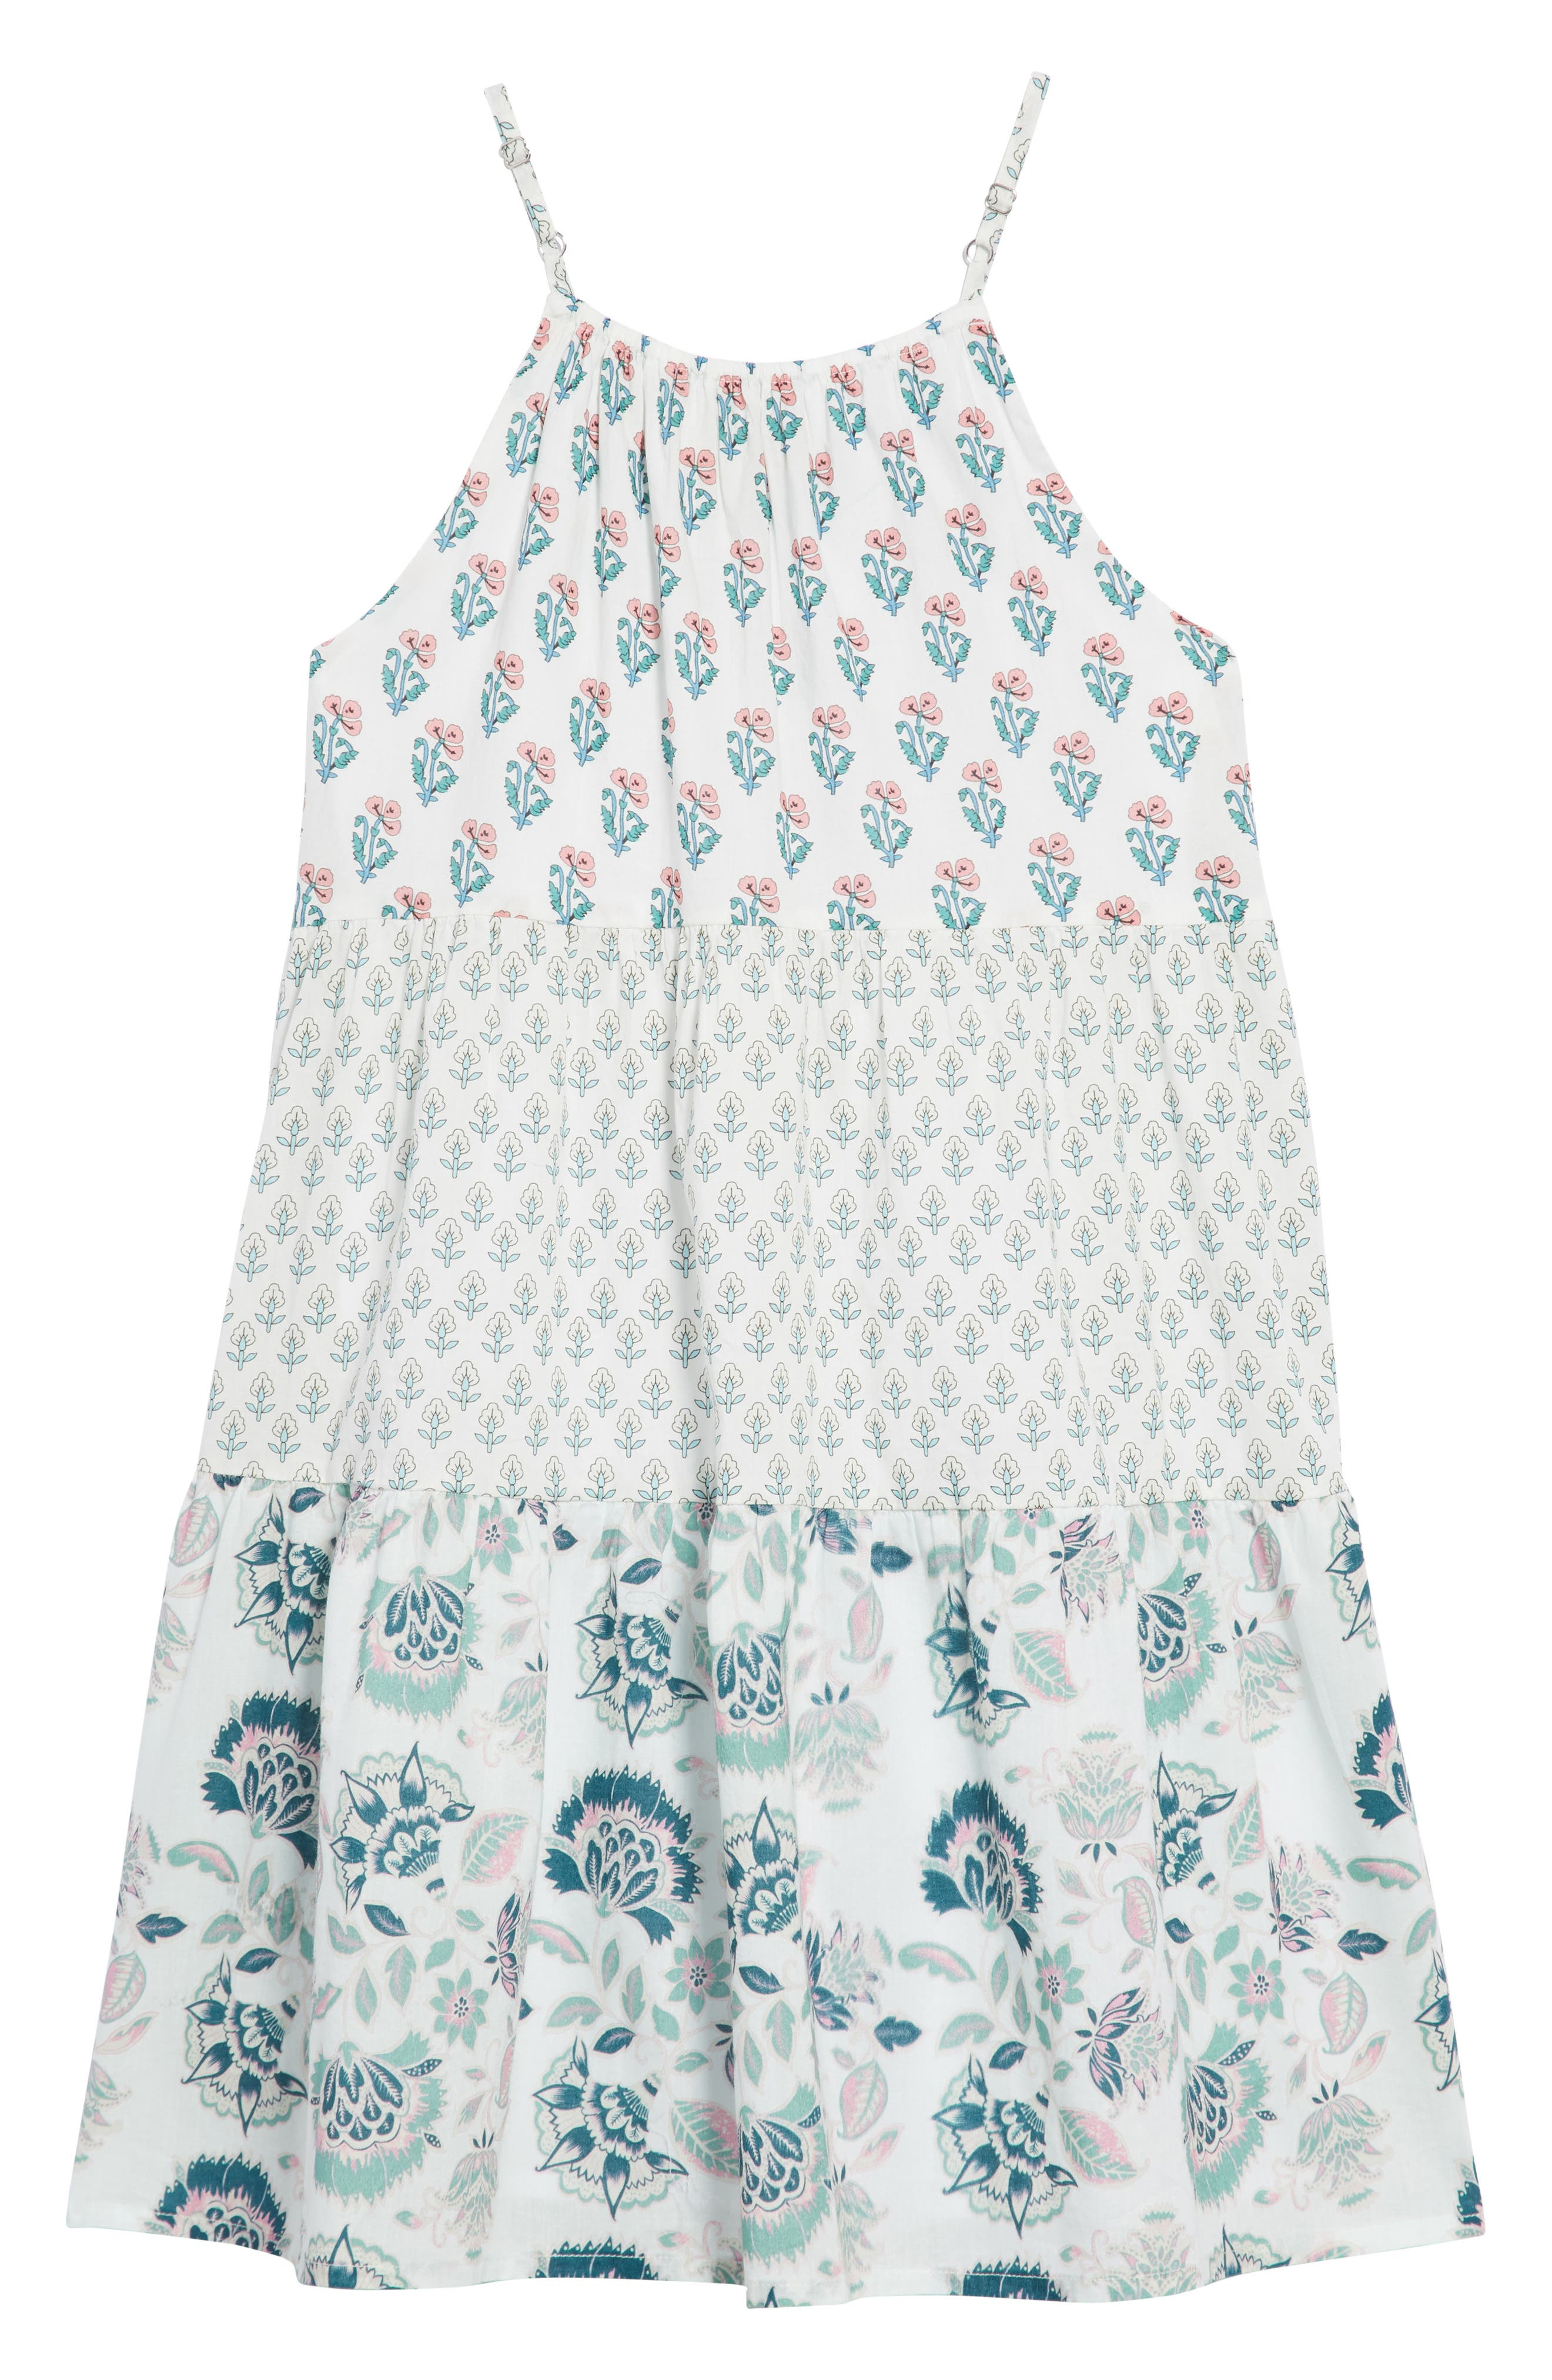 Lucy Dress,                             Alternate thumbnail 3, color,                             White